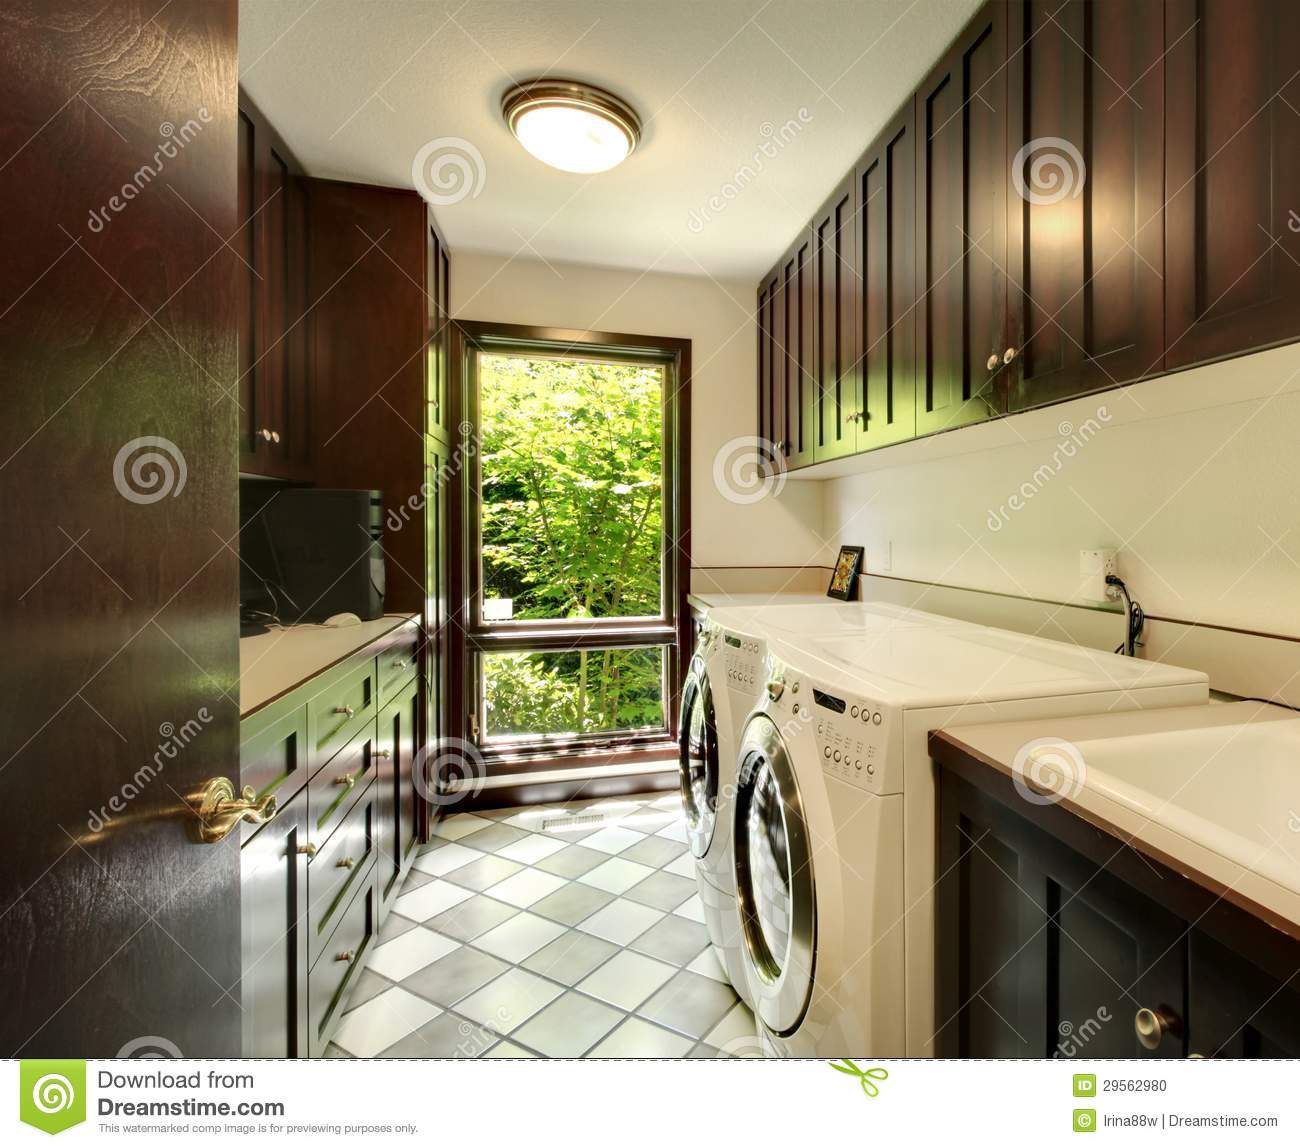 Spacious home laundry utility room royalty free stock photo ...